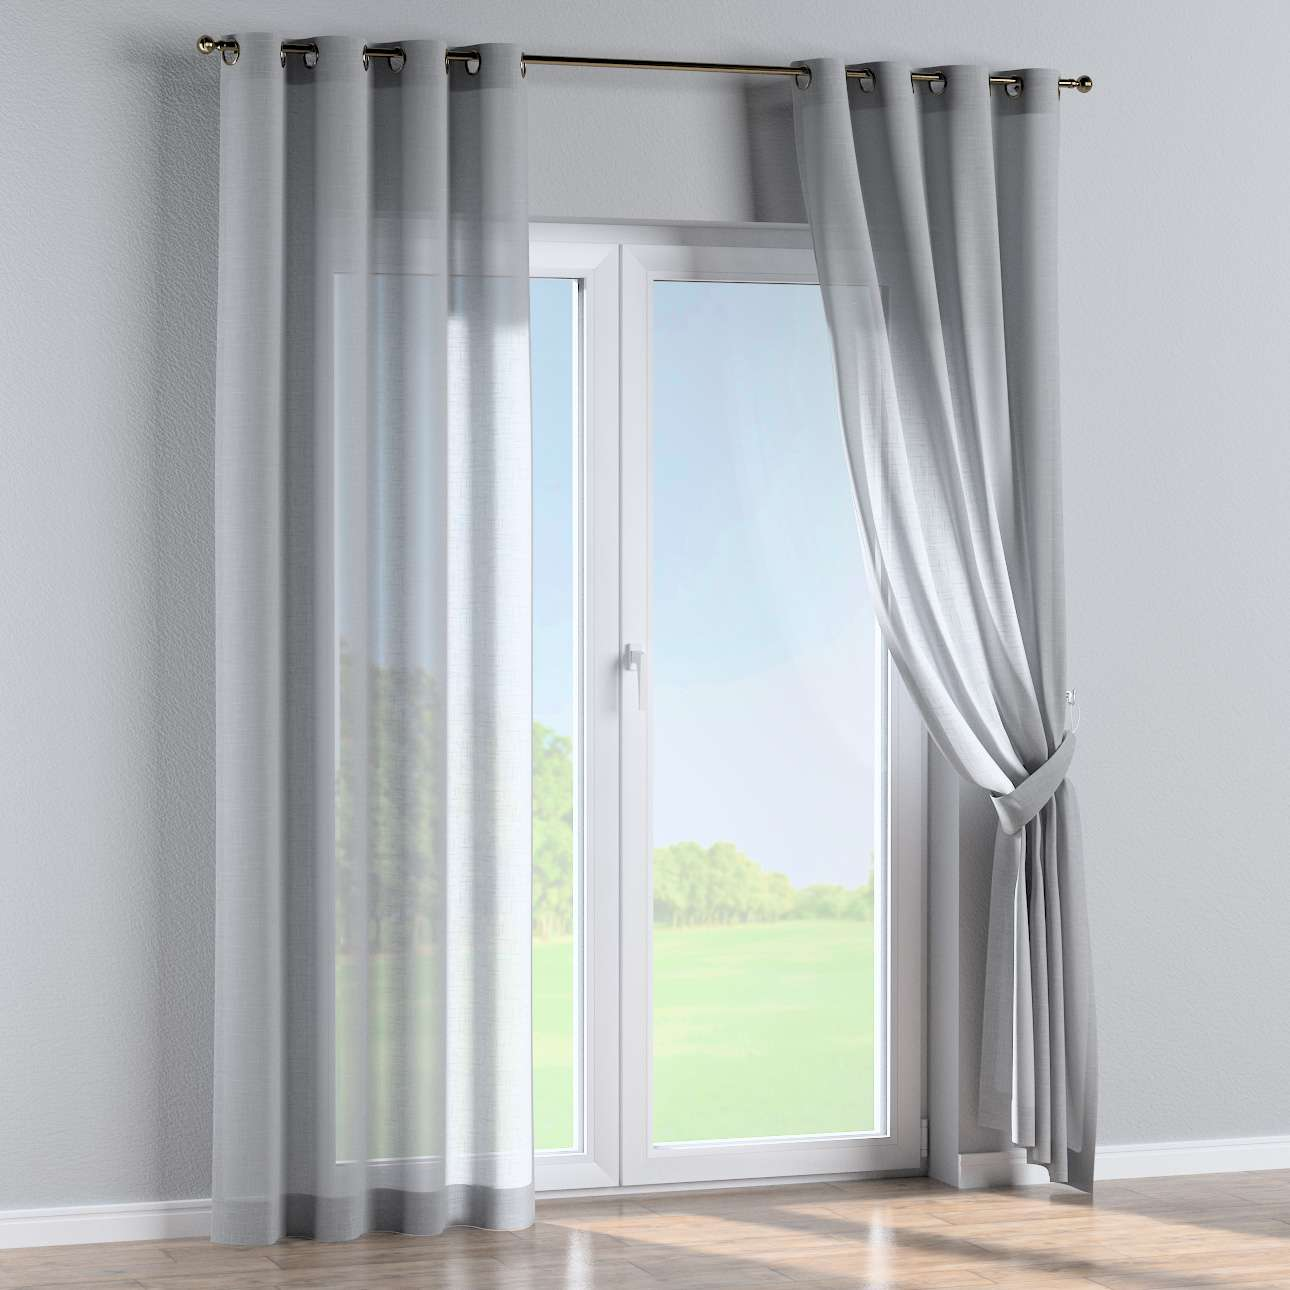 Eyelet curtains in collection Sweet Secret, fabric: 142-90